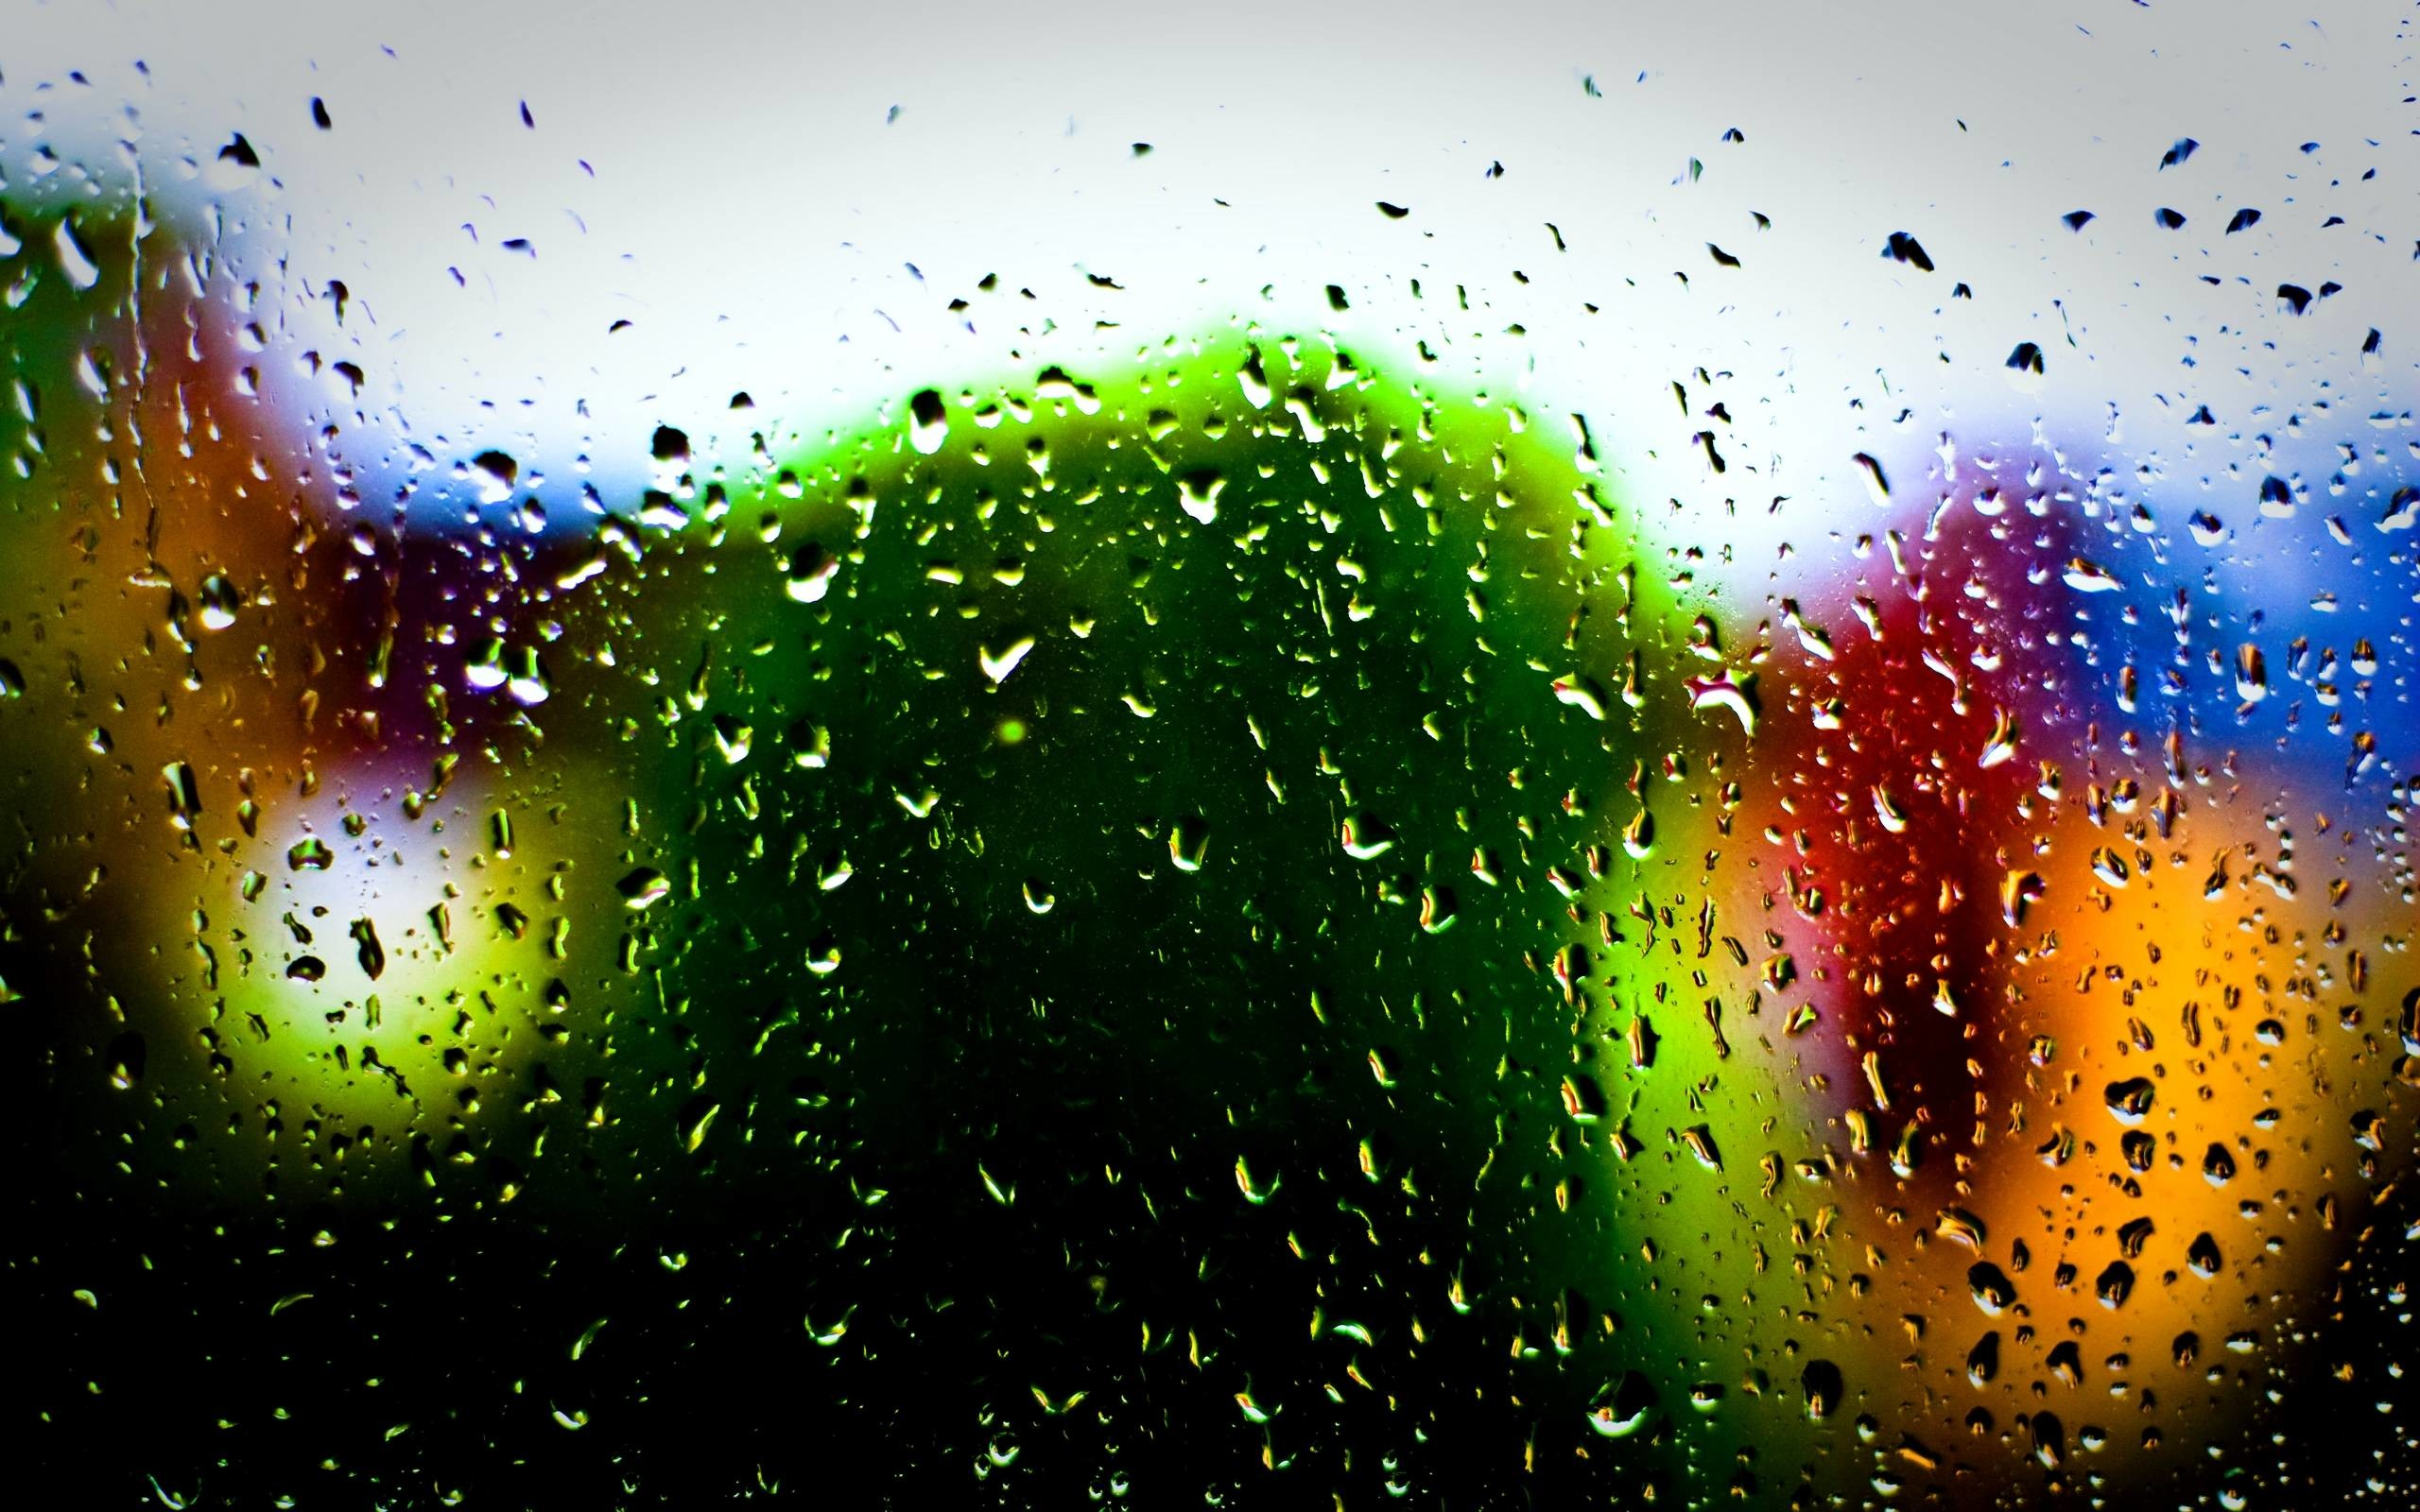 Download the default rain drops wallpaper from iPhone OS